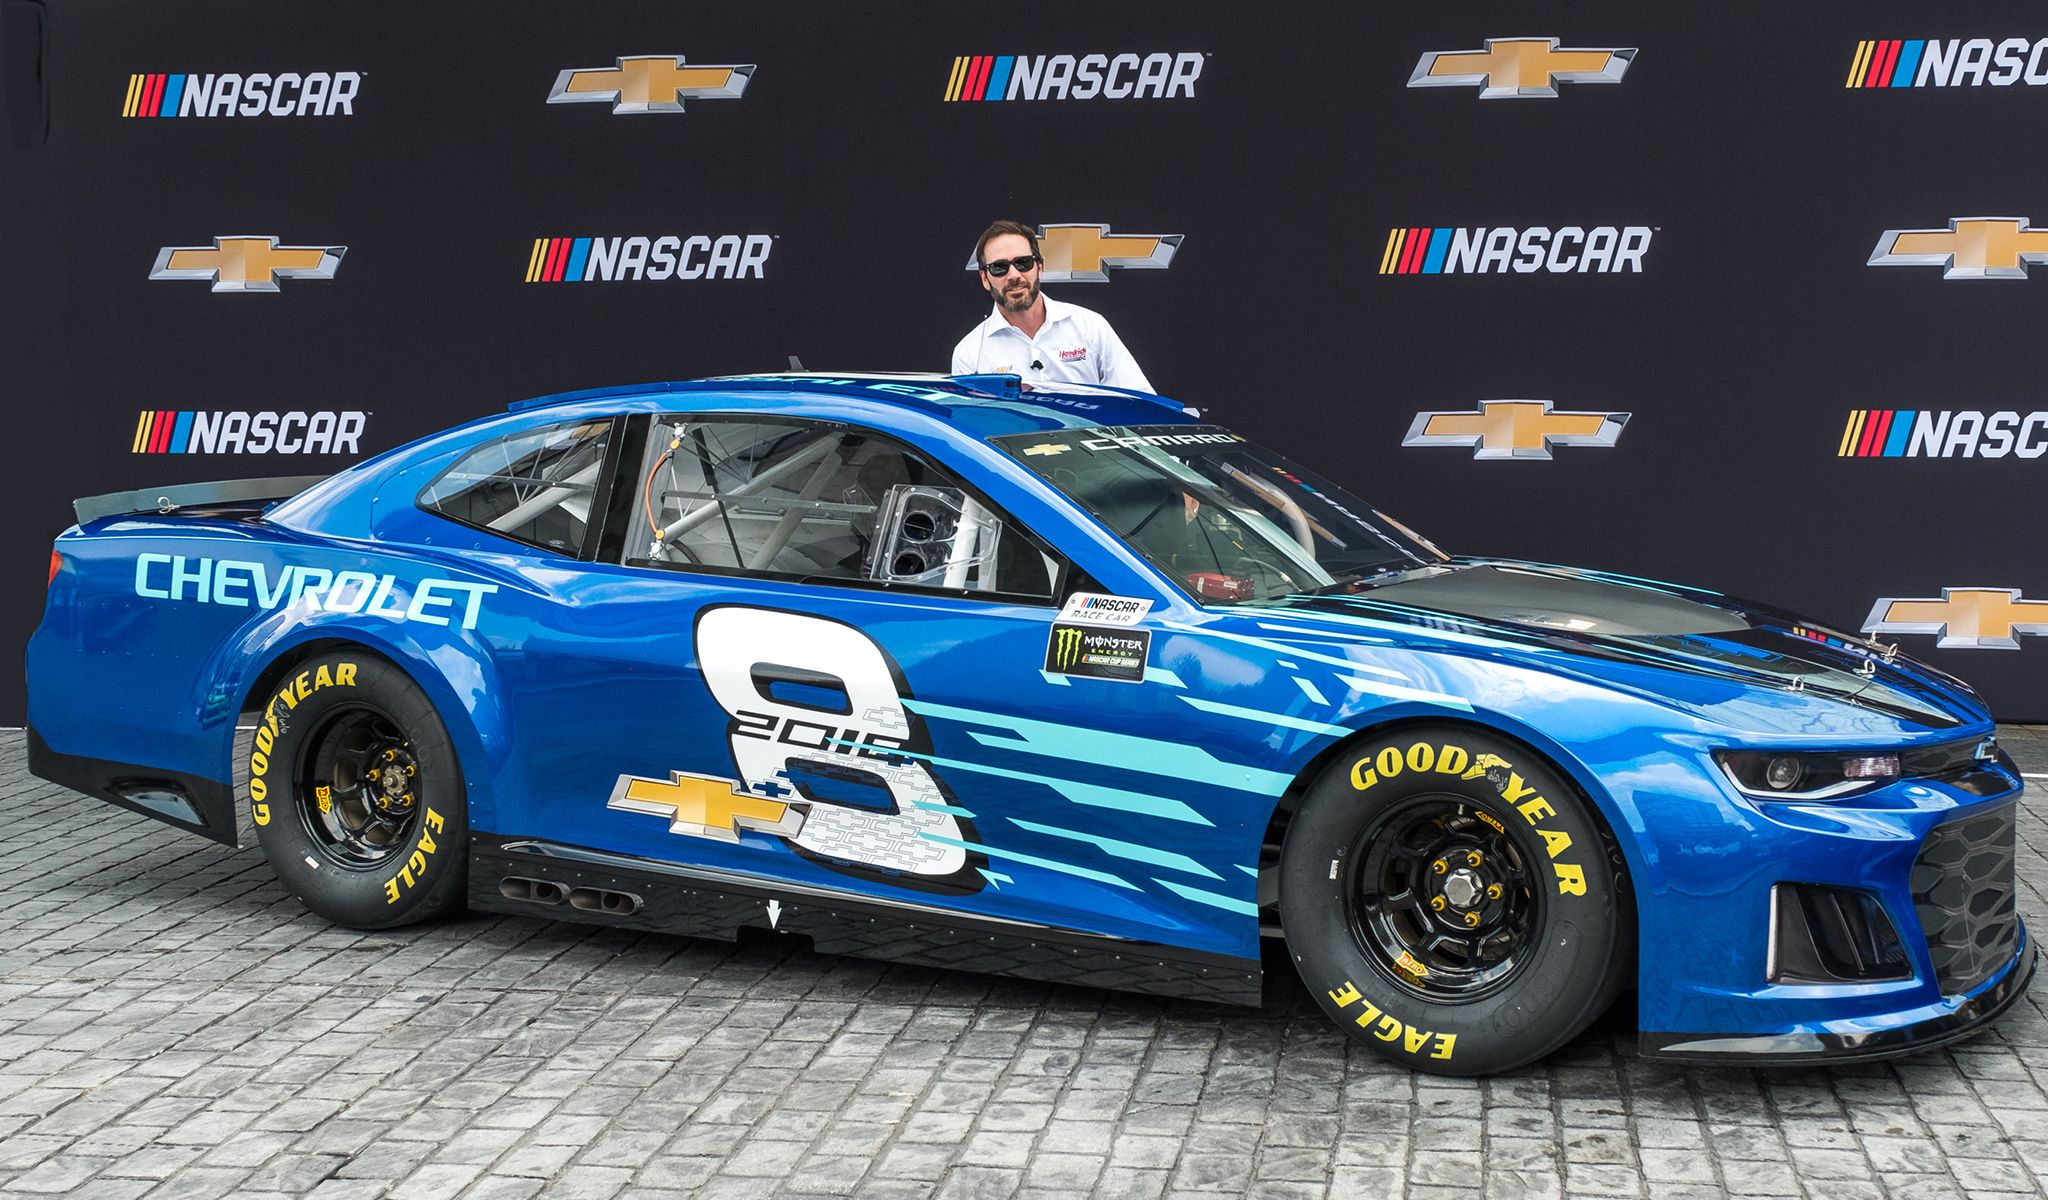 The 2018 Chevrolet Camaro Zl1 Nascar Cup Race Car Was Unveiled At Chevrolet S Headquarters In Detroit On August 10 Chevrolet Camaro Zl1 Camaro Chevrolet Camaro